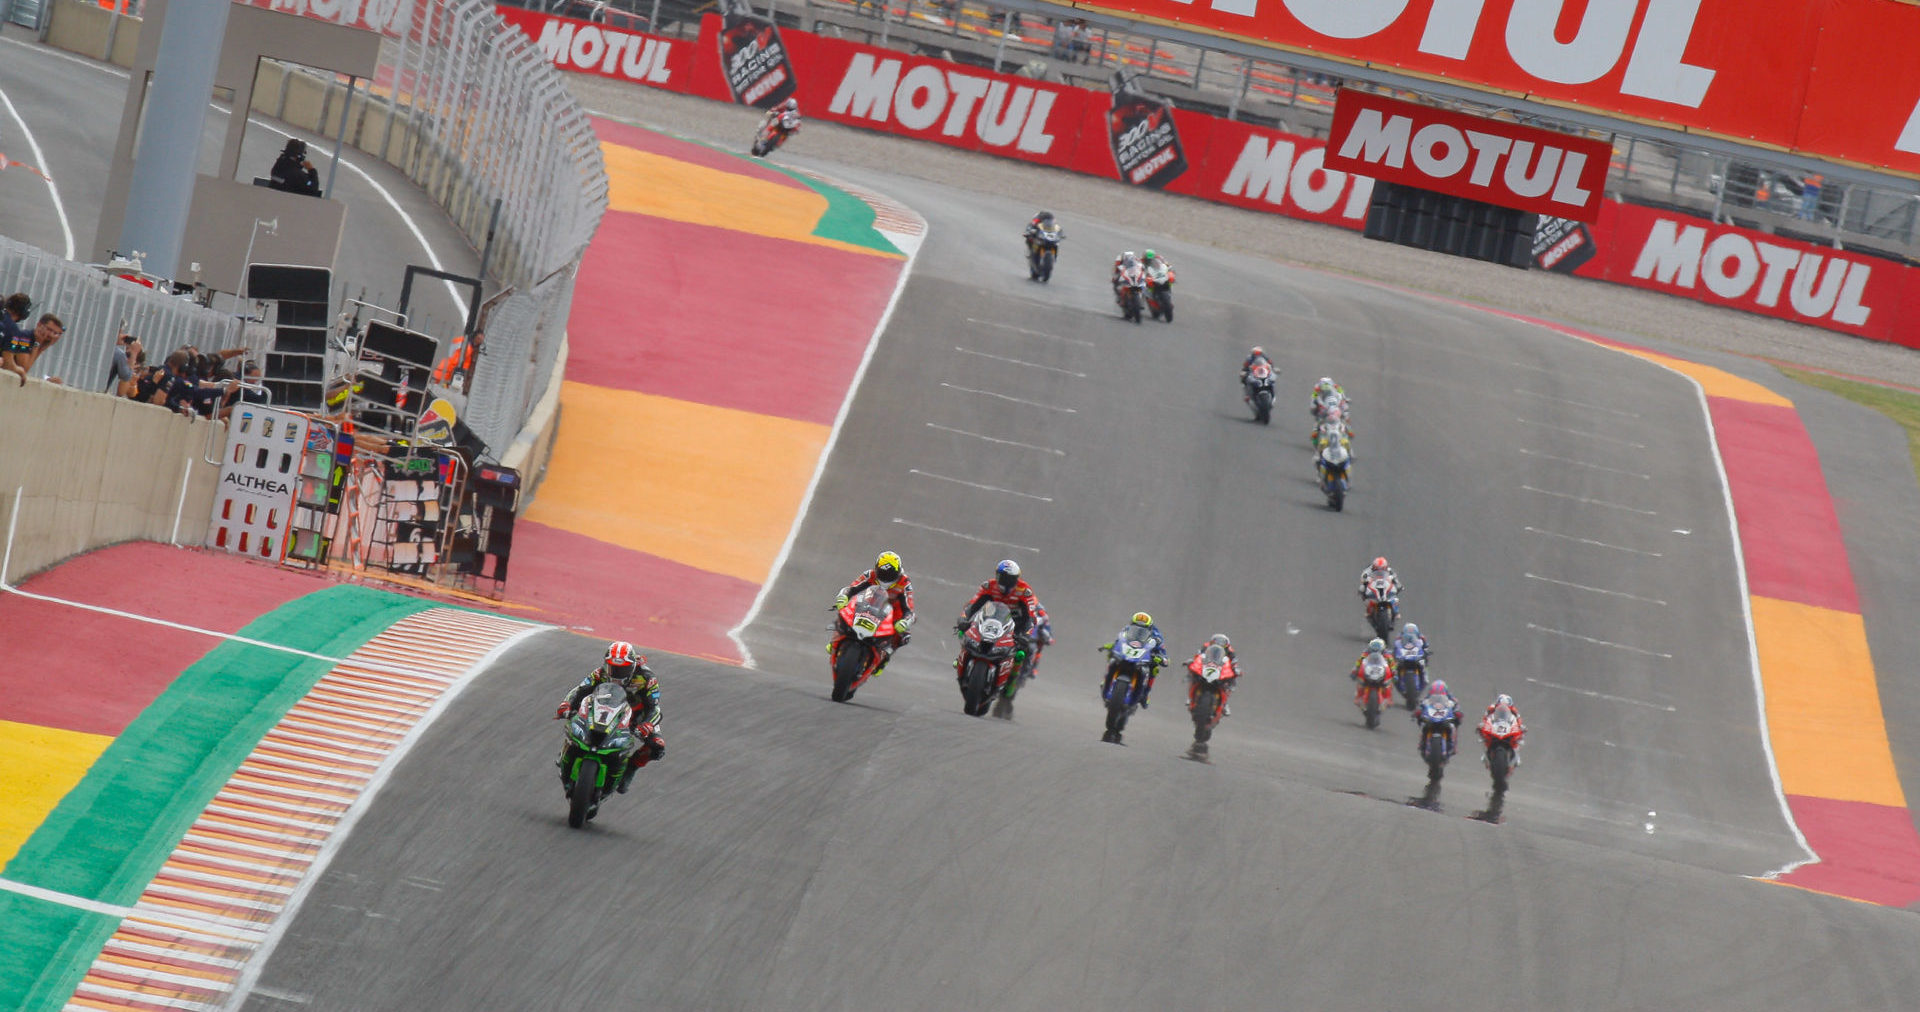 Jonathan Rea (1) leads a World Superbike race at Argentina's Circuito San Juan Villicum in 2019, the last time the FIM Superbike World Championship raced there. Photo courtesy Dorna.